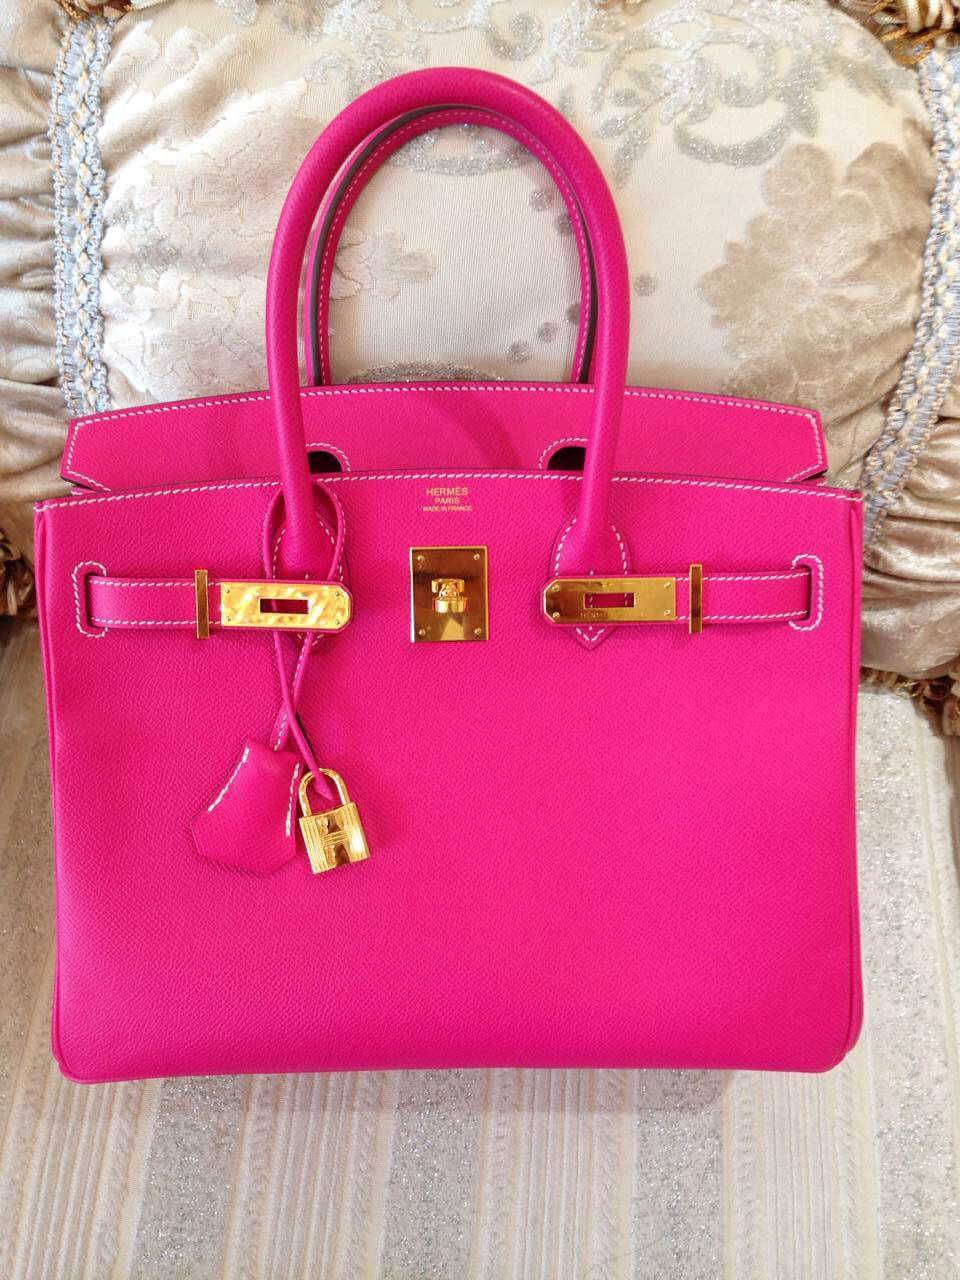 6b89752227f5 Hermes Birkin Togo 30cm with Gold Hardware E5 Q Engraved Stamp